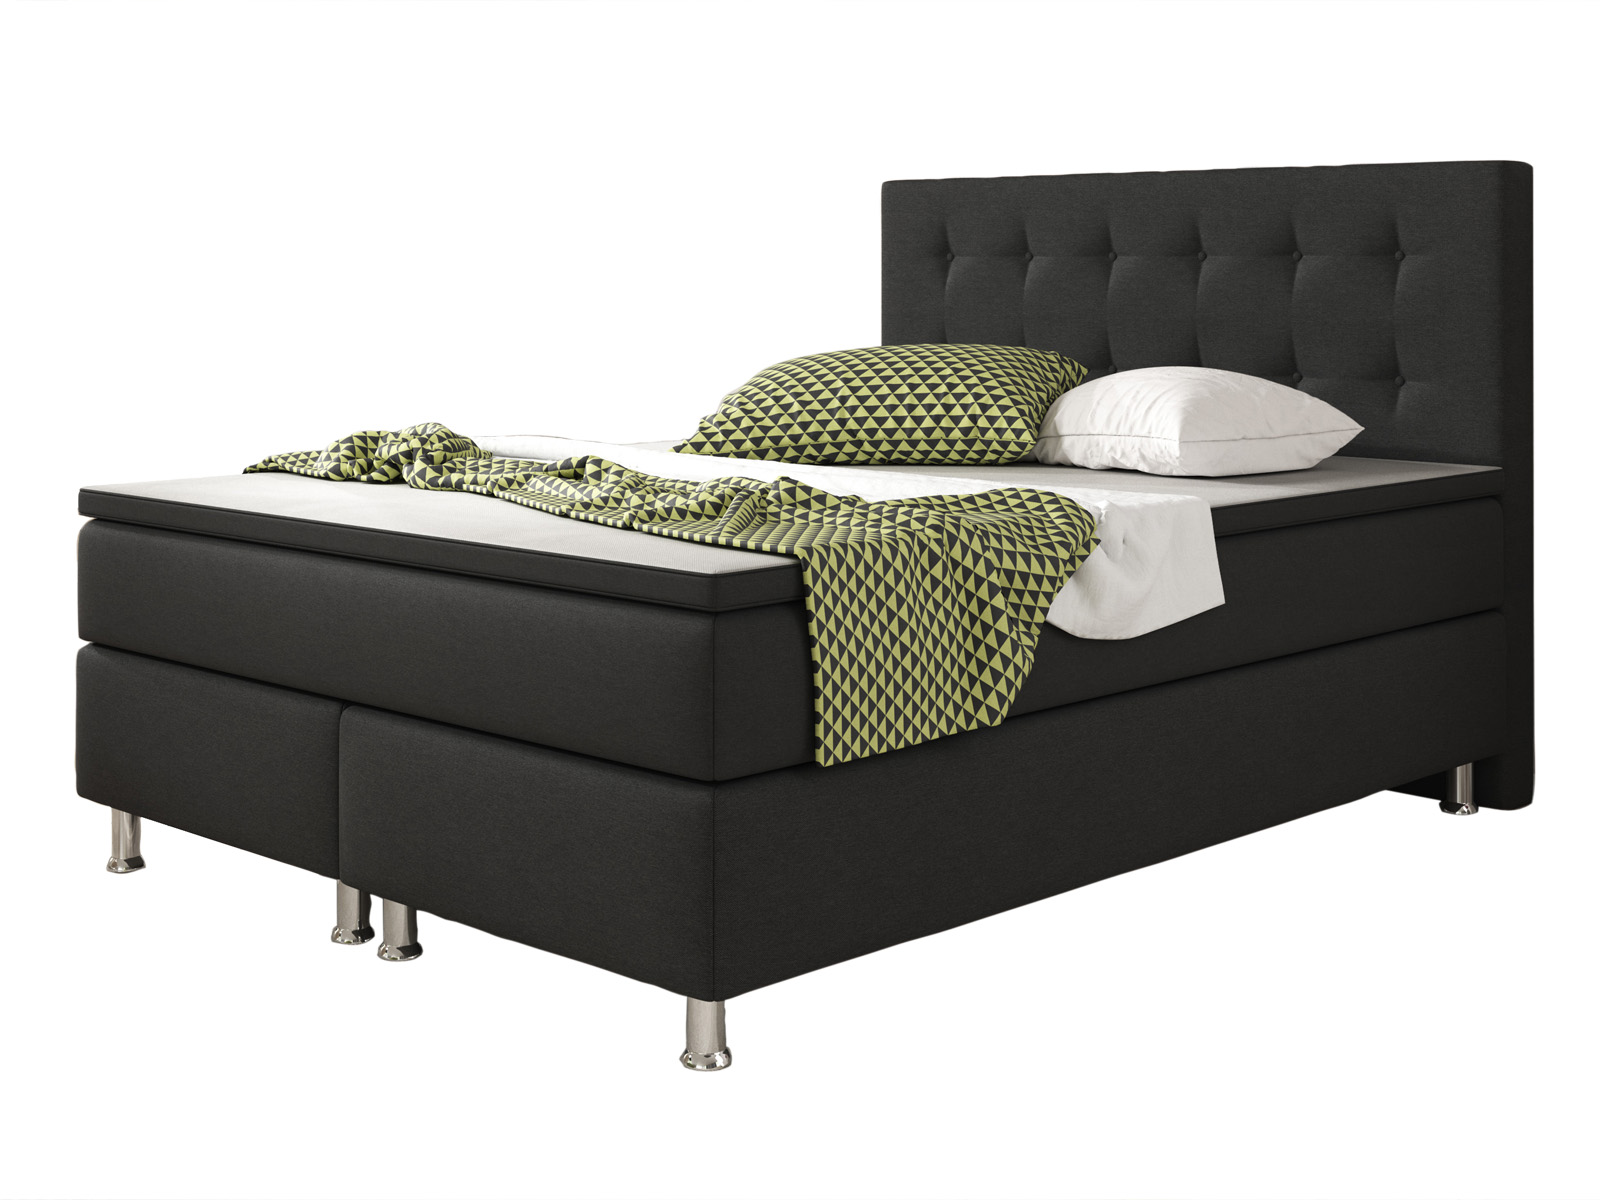 boxspringbett k ln 140x200 webstoff schwarz schlafen. Black Bedroom Furniture Sets. Home Design Ideas